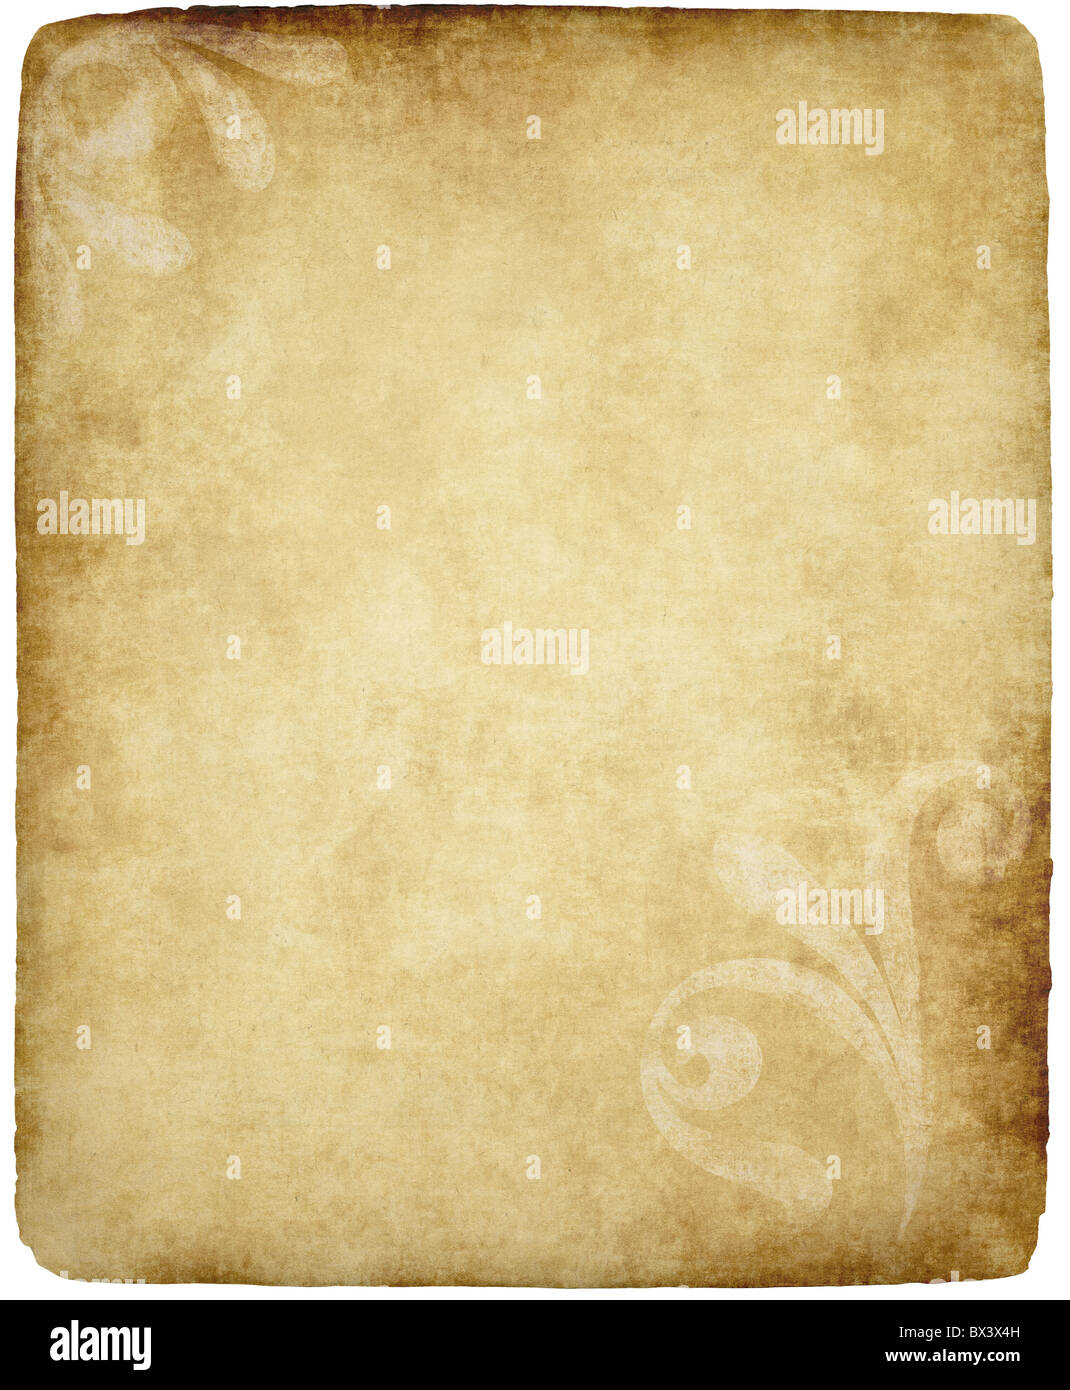 Very large old paper or parchment background texture with large floral  MJ01